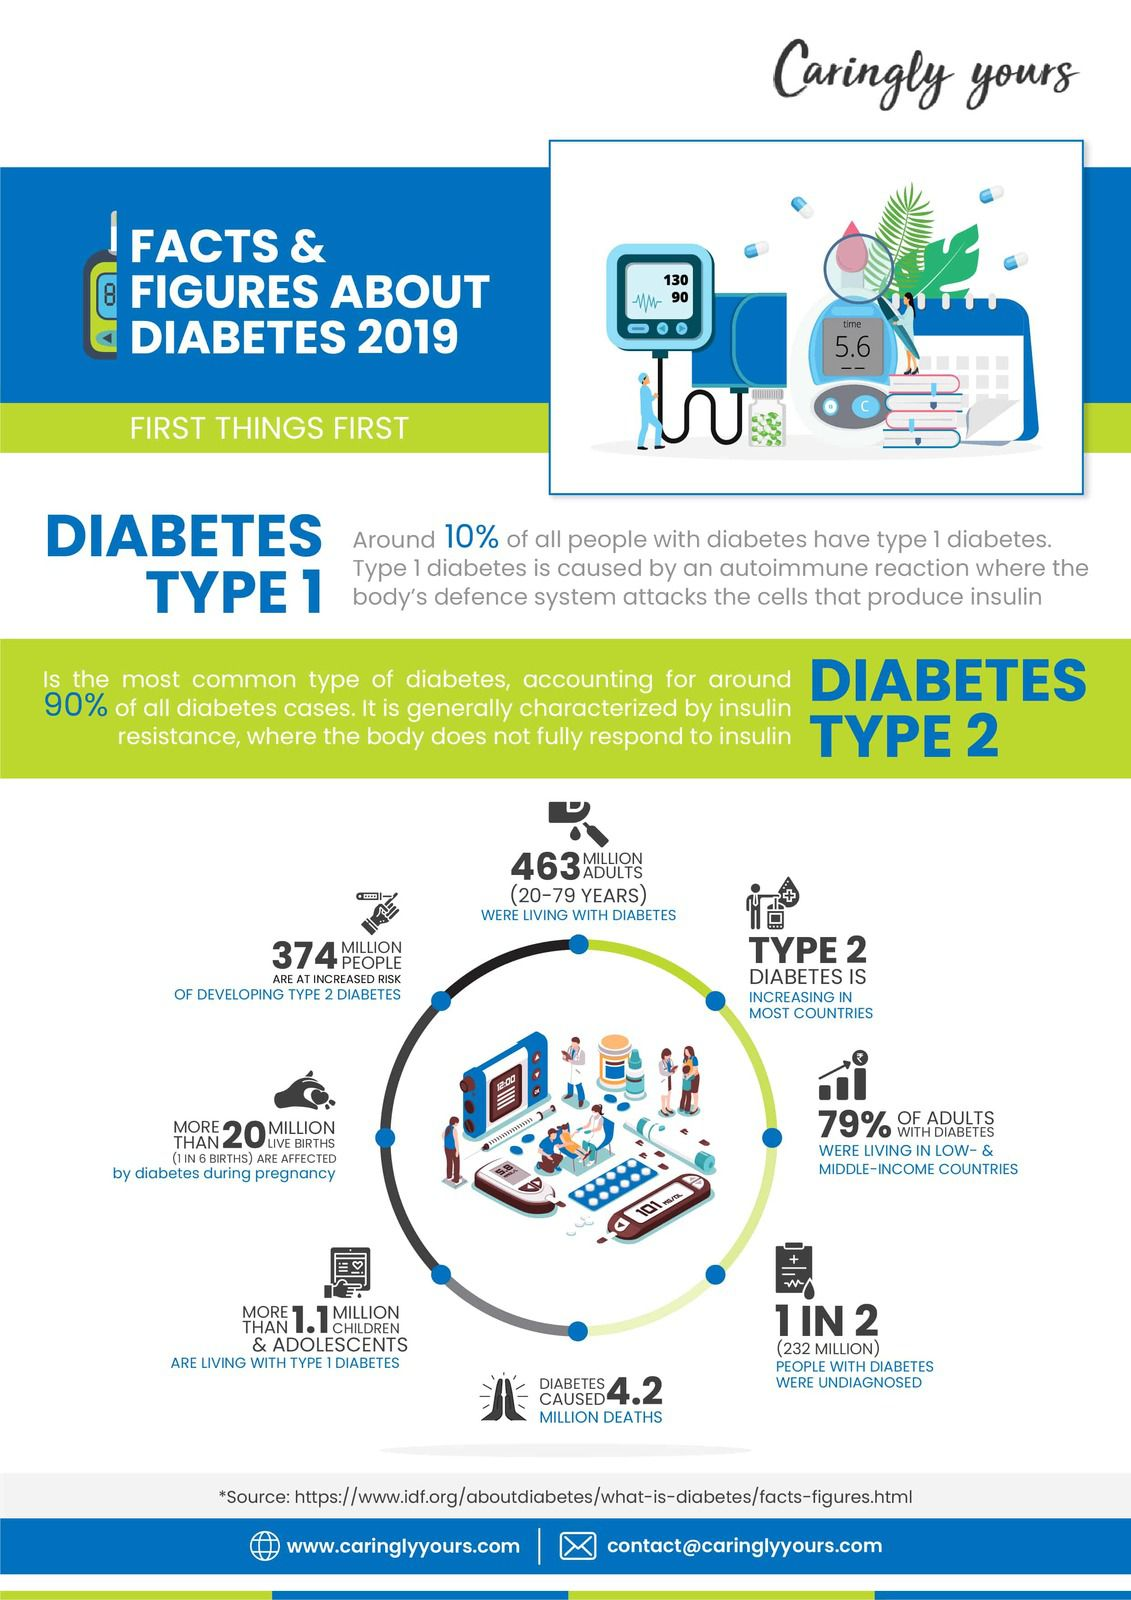 Fact And Figure About Diabetes - Caringlyyours